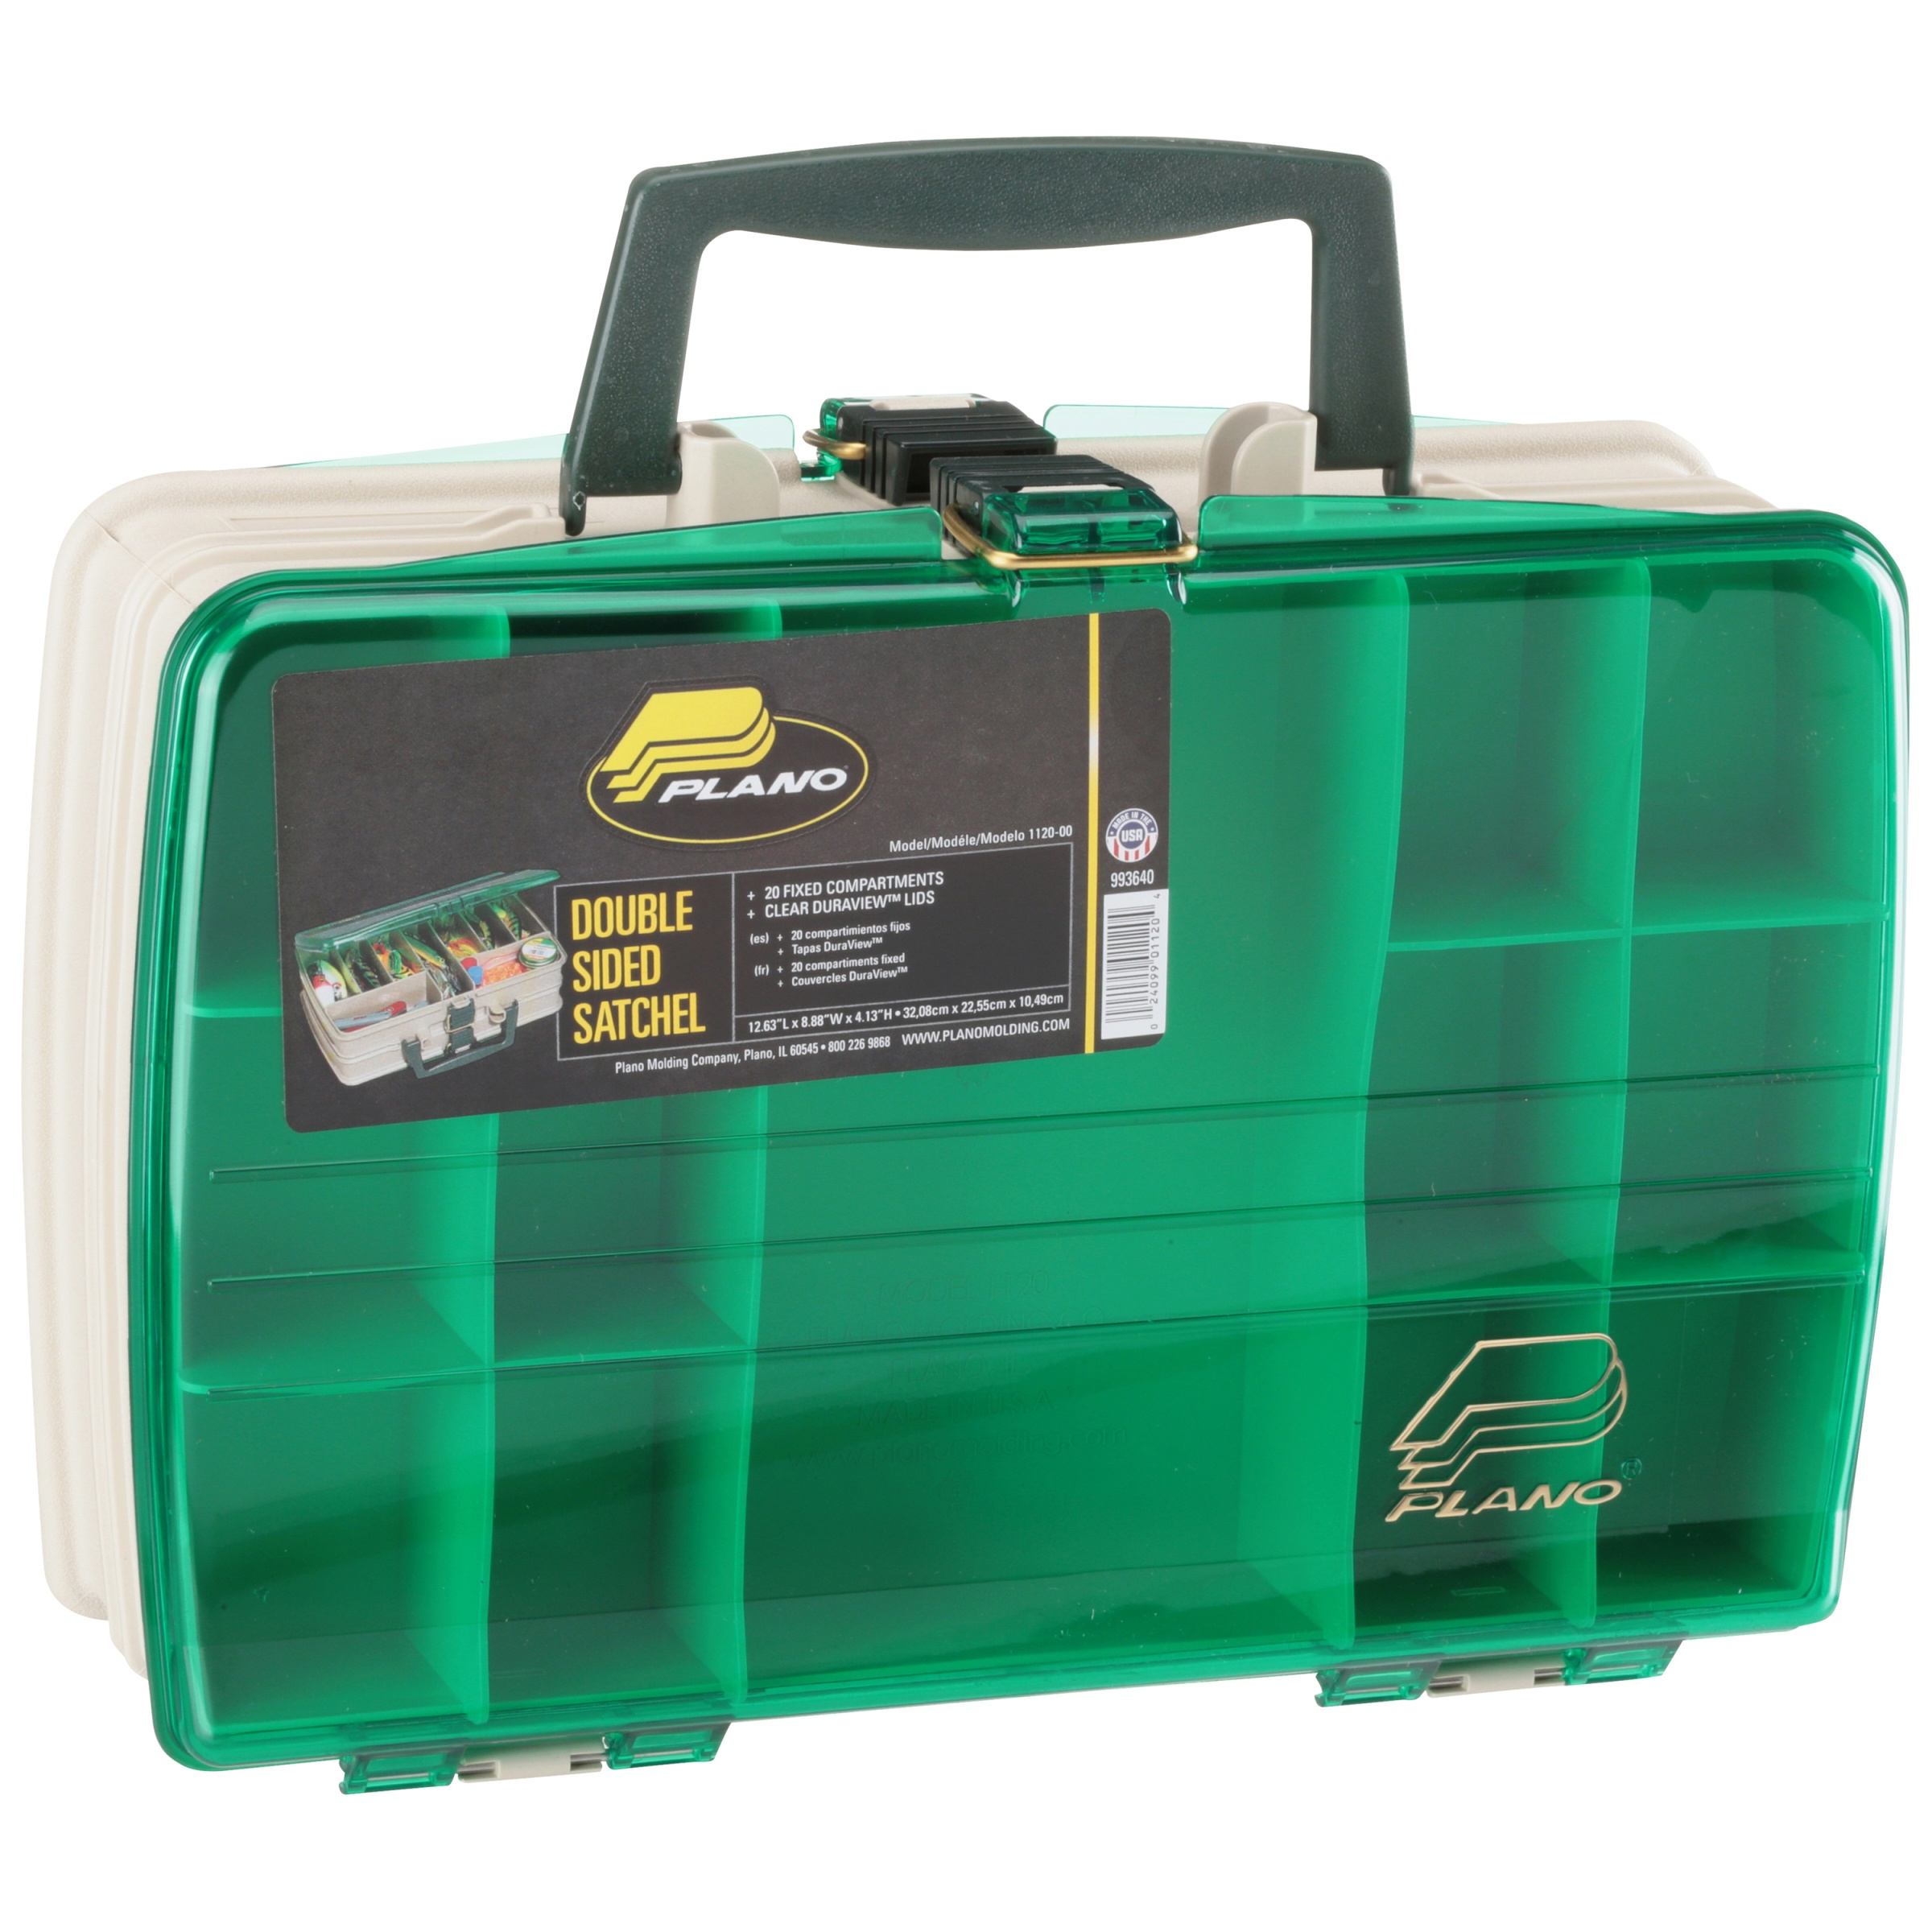 PLANO DOUBLE SIDED ORGANIZER